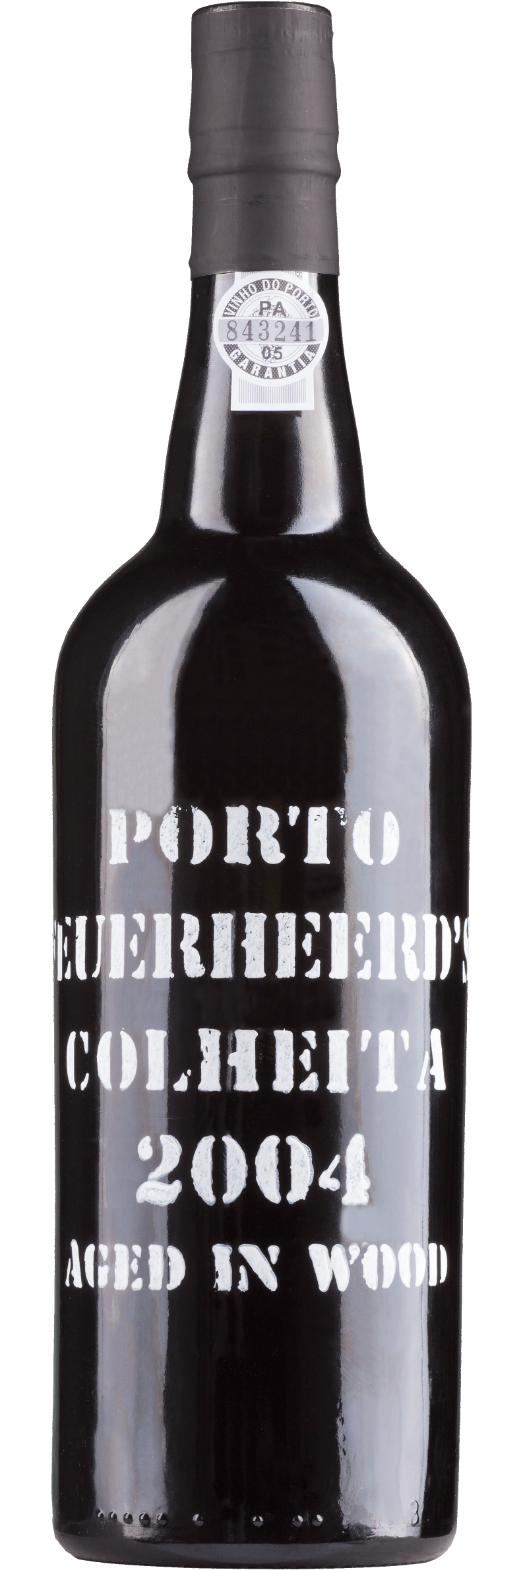 Feuerheerds Colheita 2004 Port 75CL